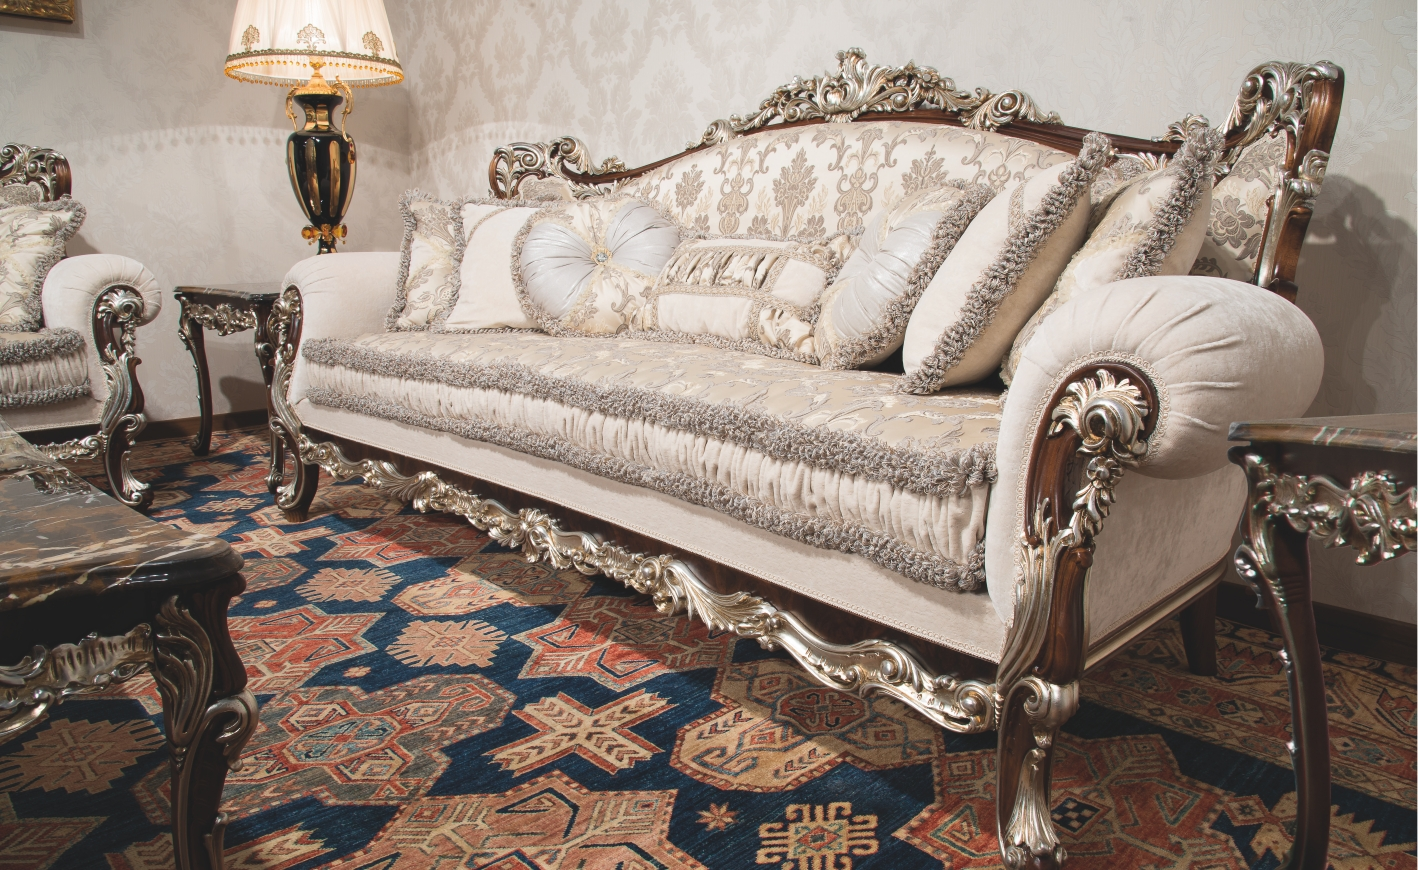 Attractive Luxury Leather U0026 Upholstered Furniture 1 Empire Style Sofa. Handmade In  Europe.